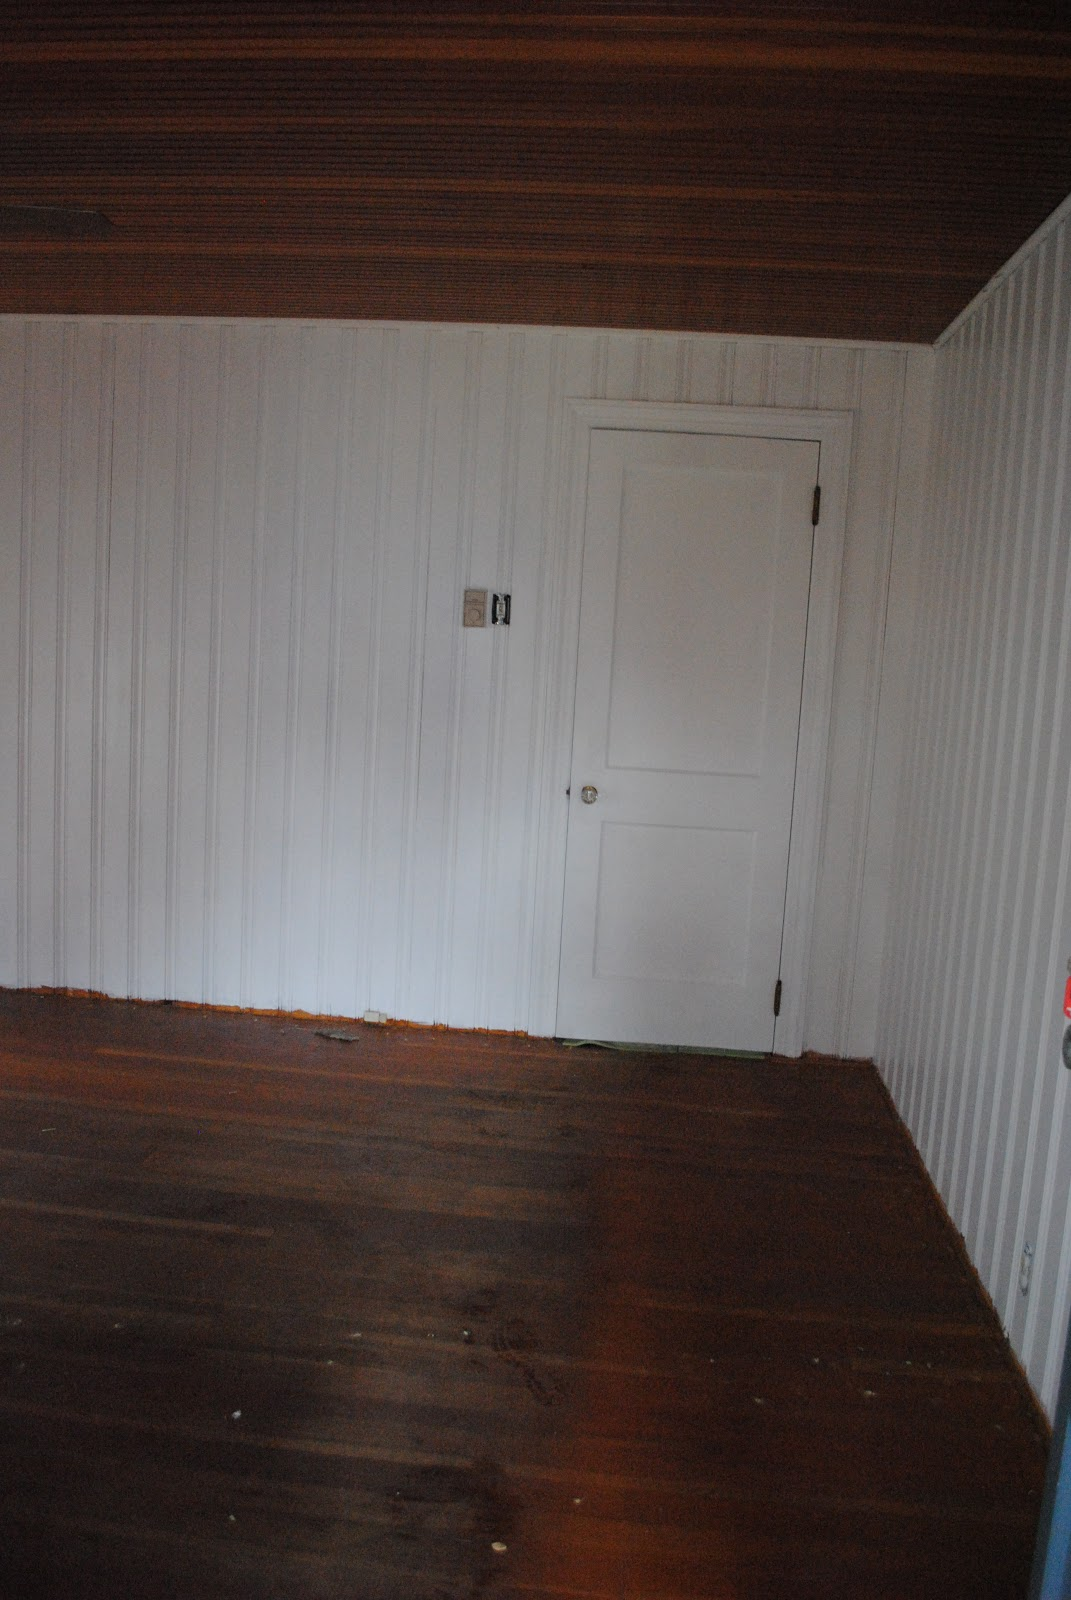 House By Holly To Paint Knotty Pine Or Not That Is The Question